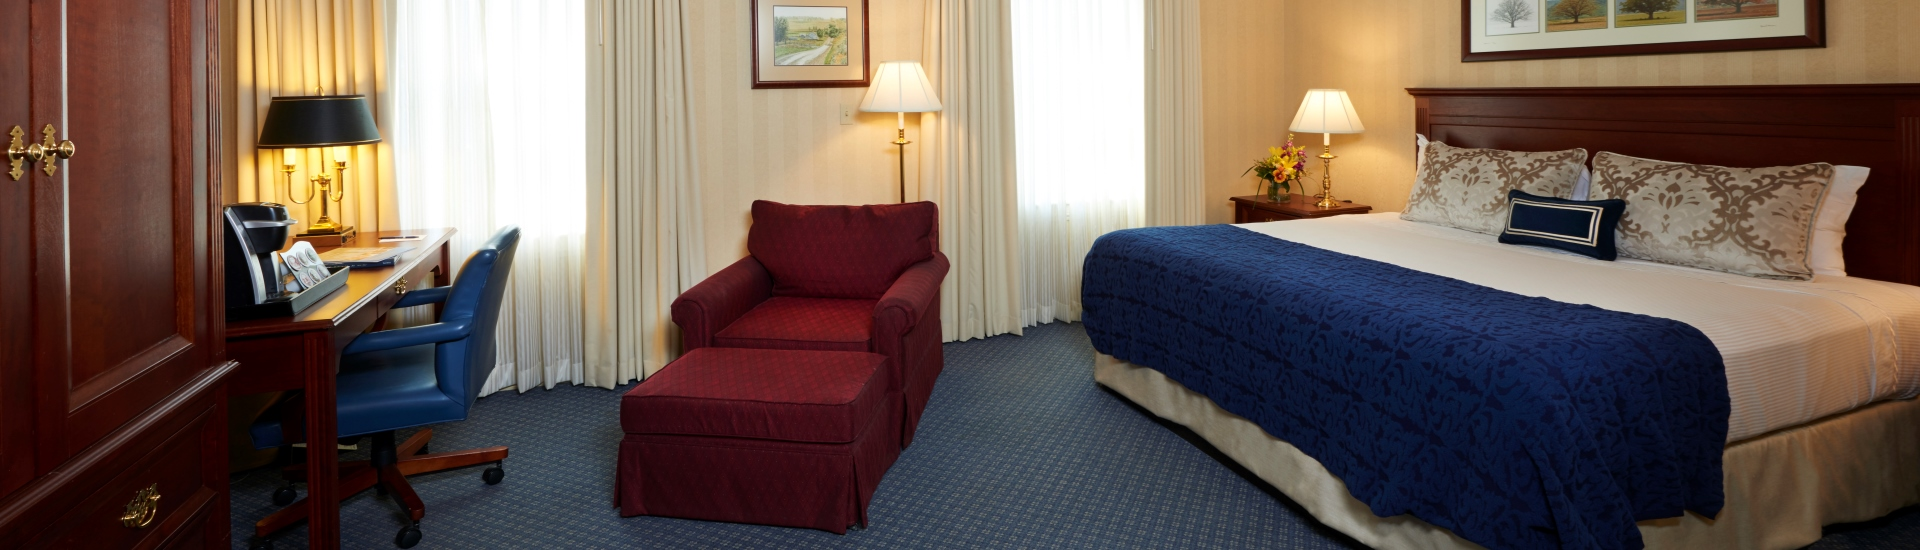 Accessible King Room at The Nittany Lion Inn